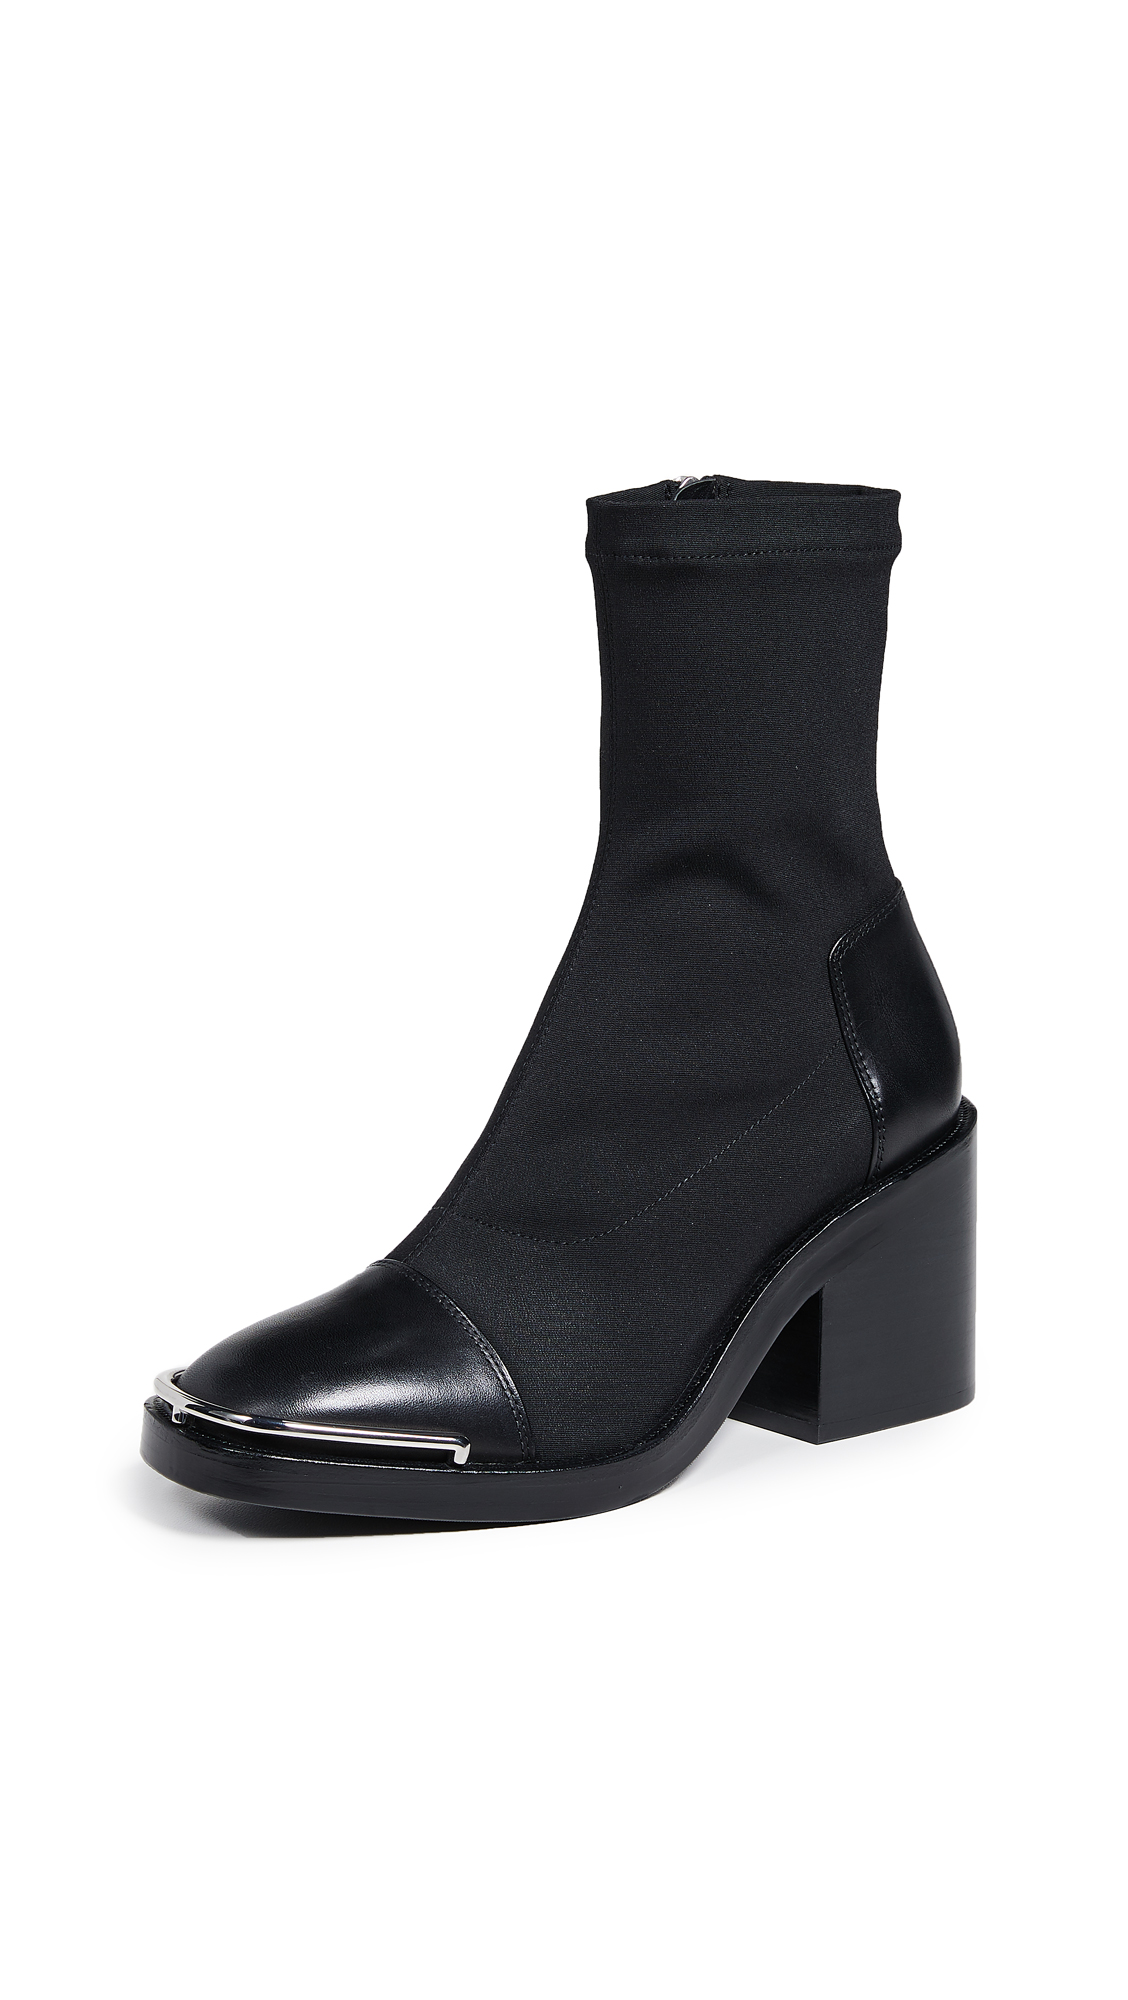 Alexander Wang Hailey Mid Sock Heel Boots - Black